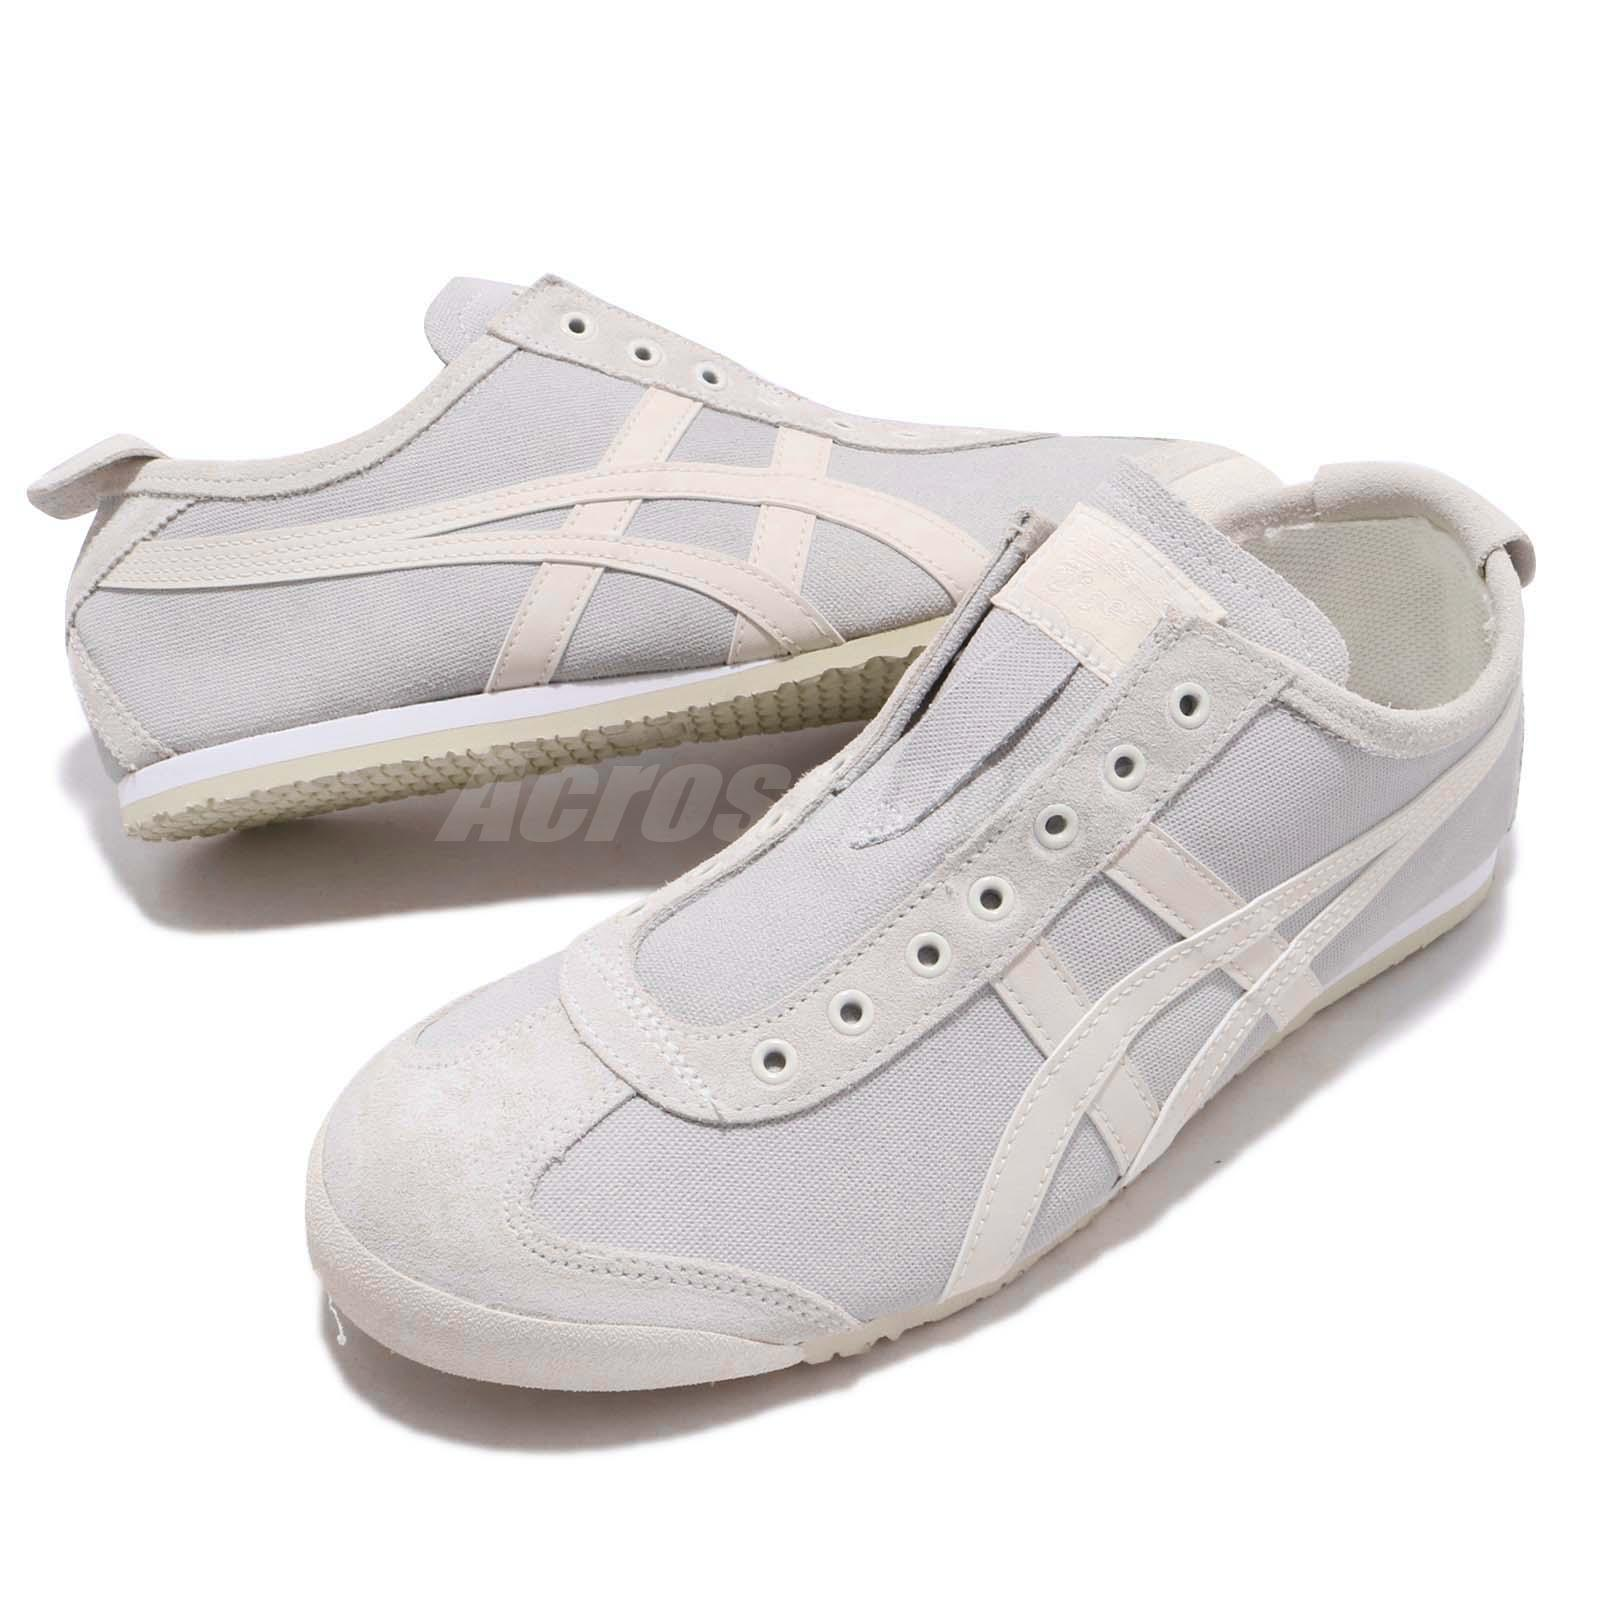 hot sales a75c0 04616 Details about Asics Onitsuka Tiger Mexico 66 Slip On Cream Oatmeal Men  Women Shoe 1183A042-100